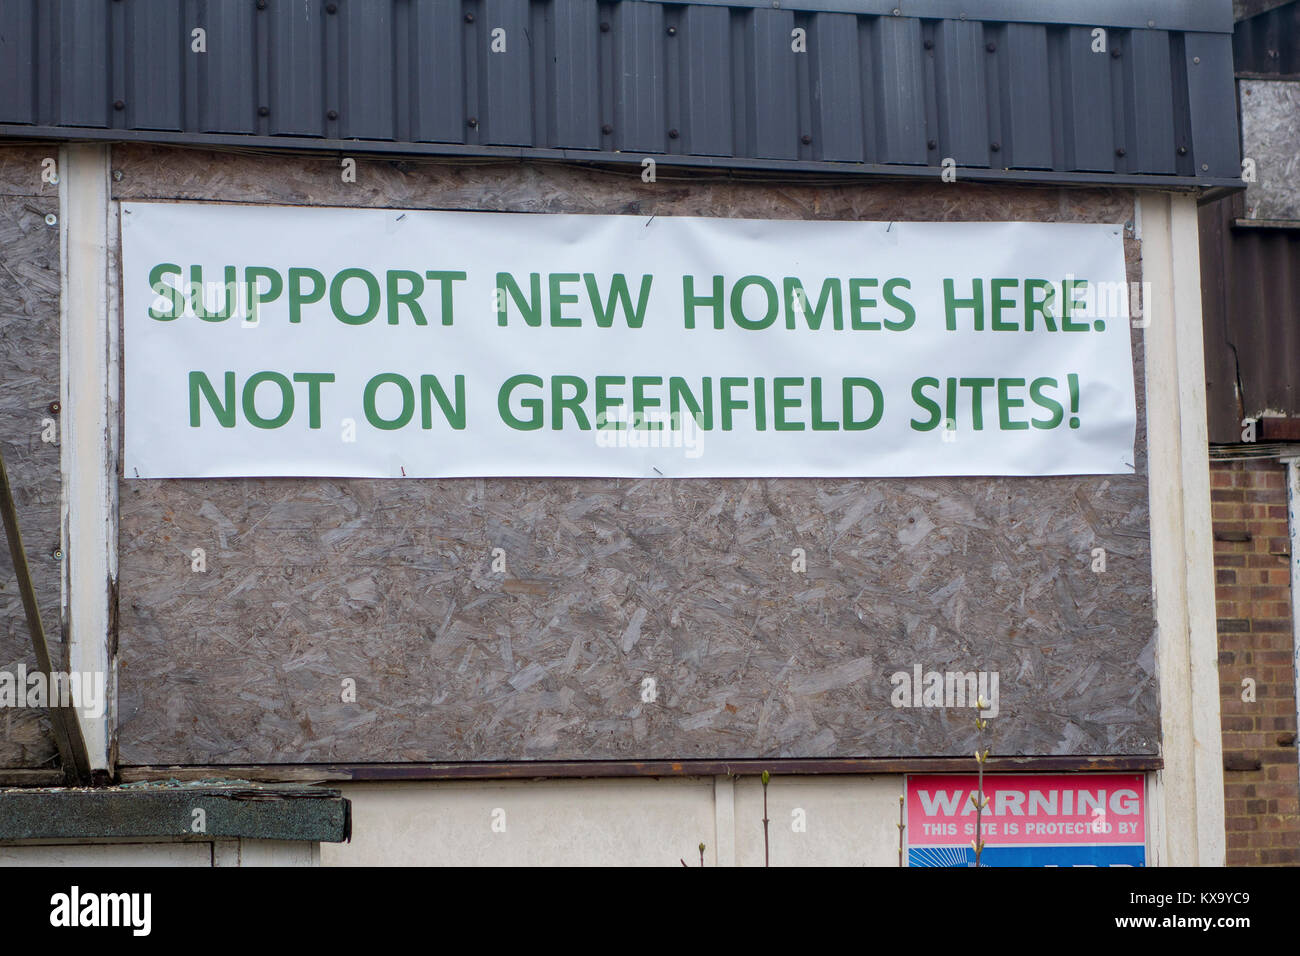 Support new homes here, not on greenfield sites protest banner on derelict building - Stock Image